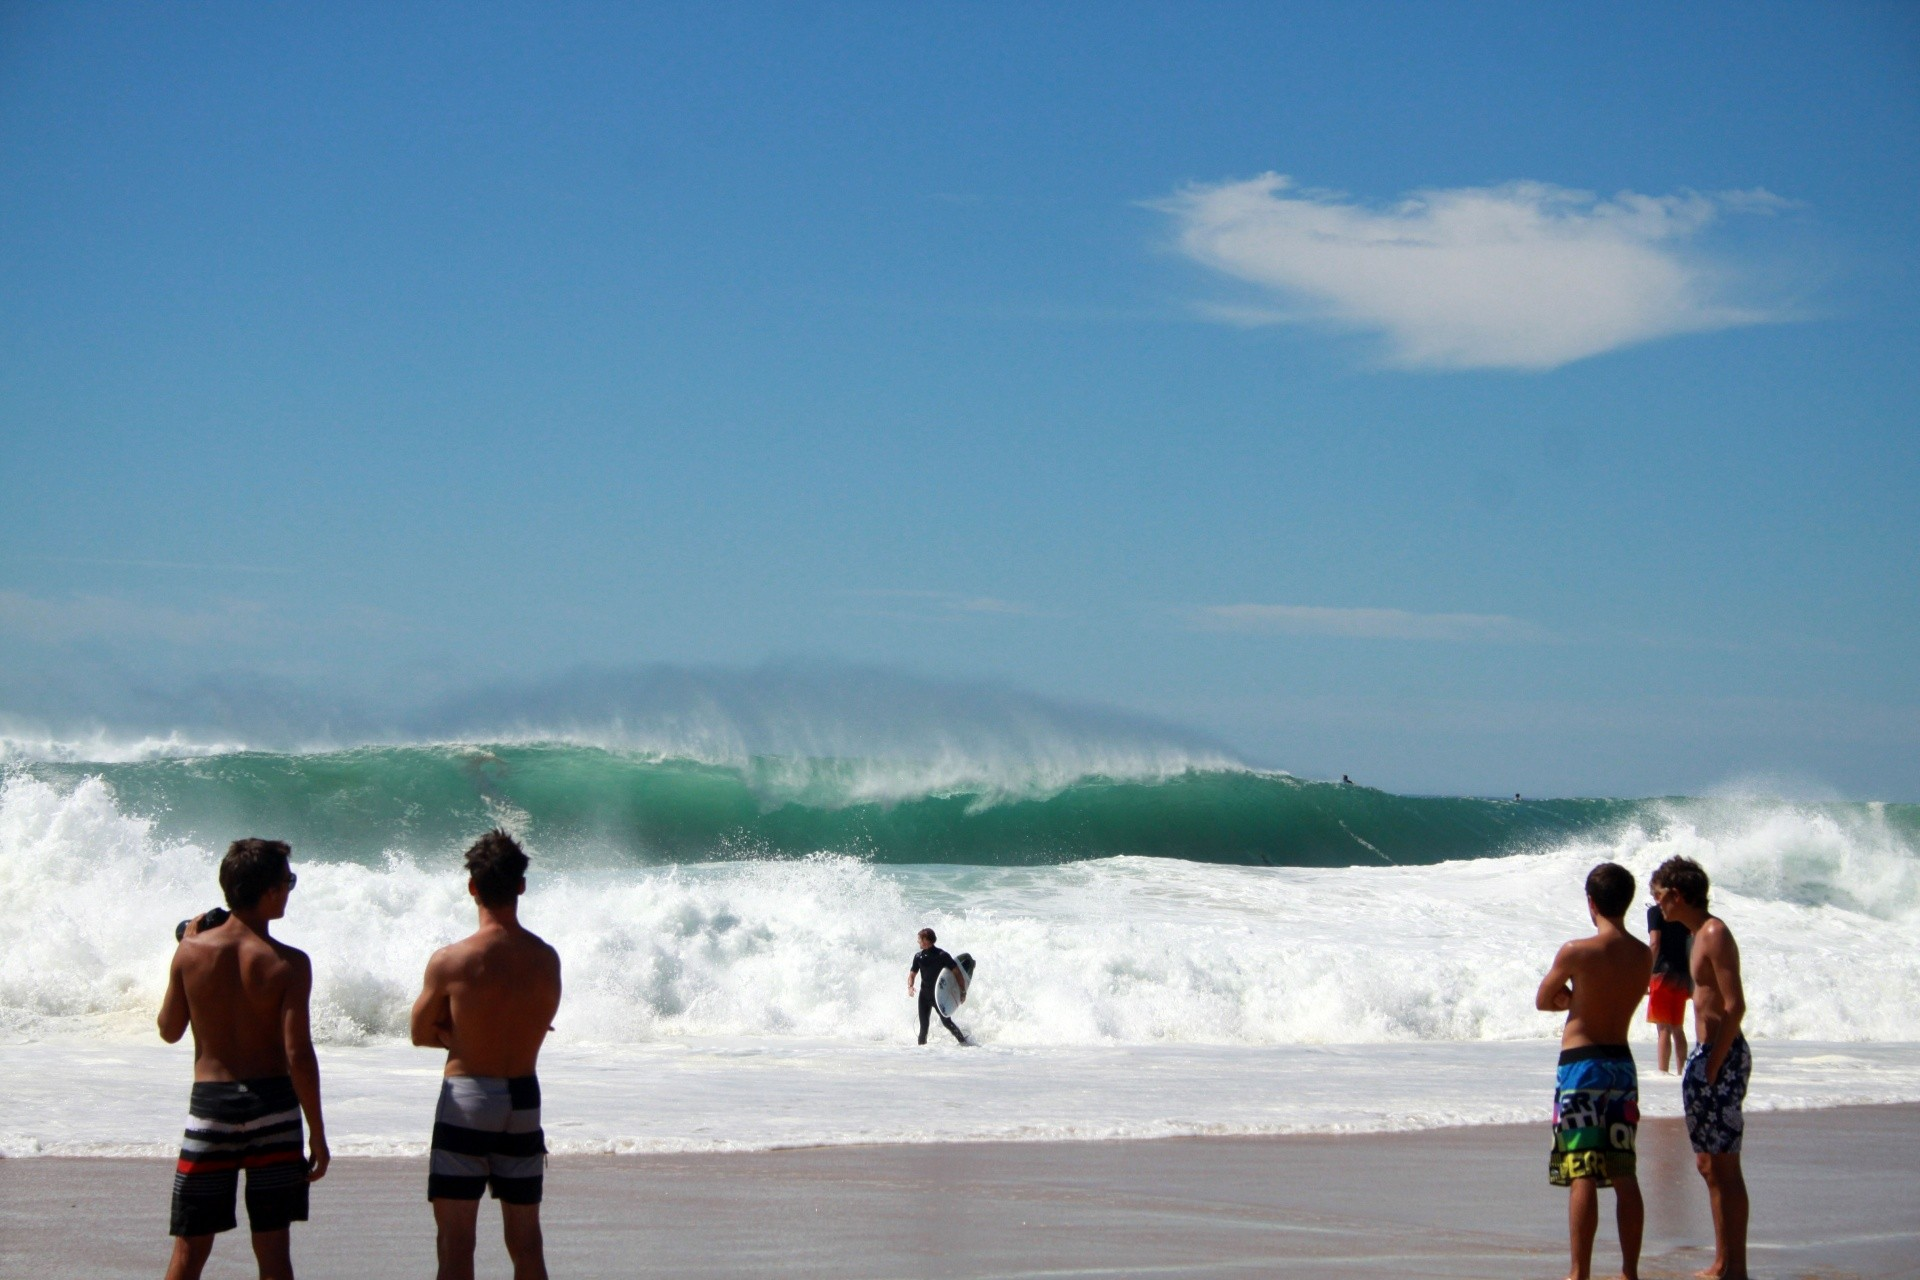 ed schlosser's photo of Hossegor (La Graviere)